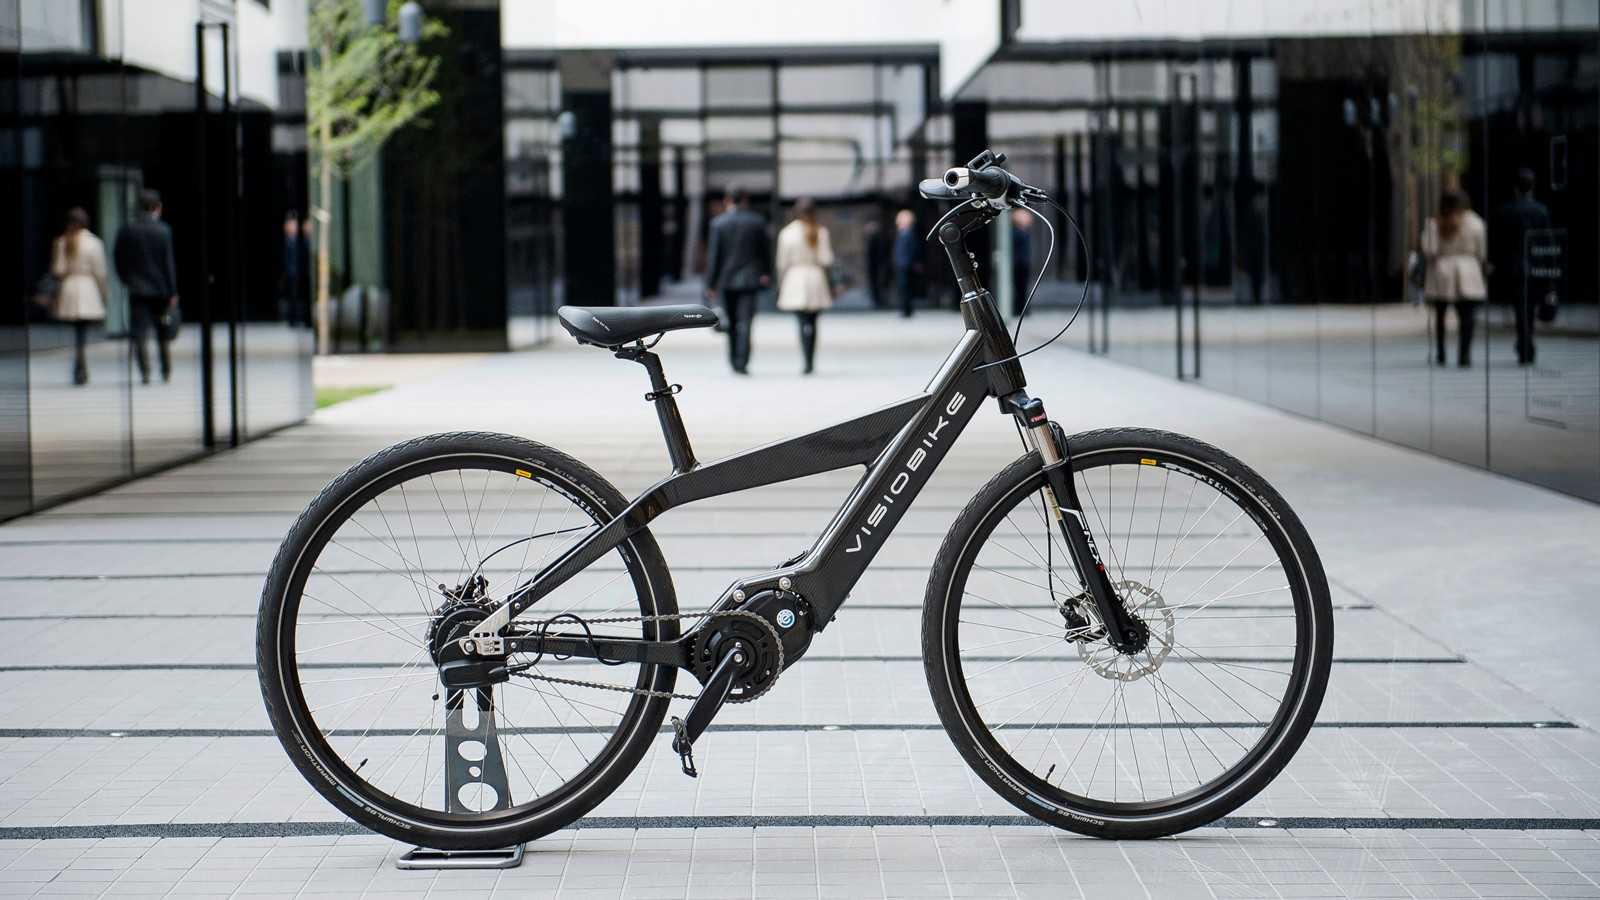 The Visiobike pedelec: amplifies the power the rider puts in